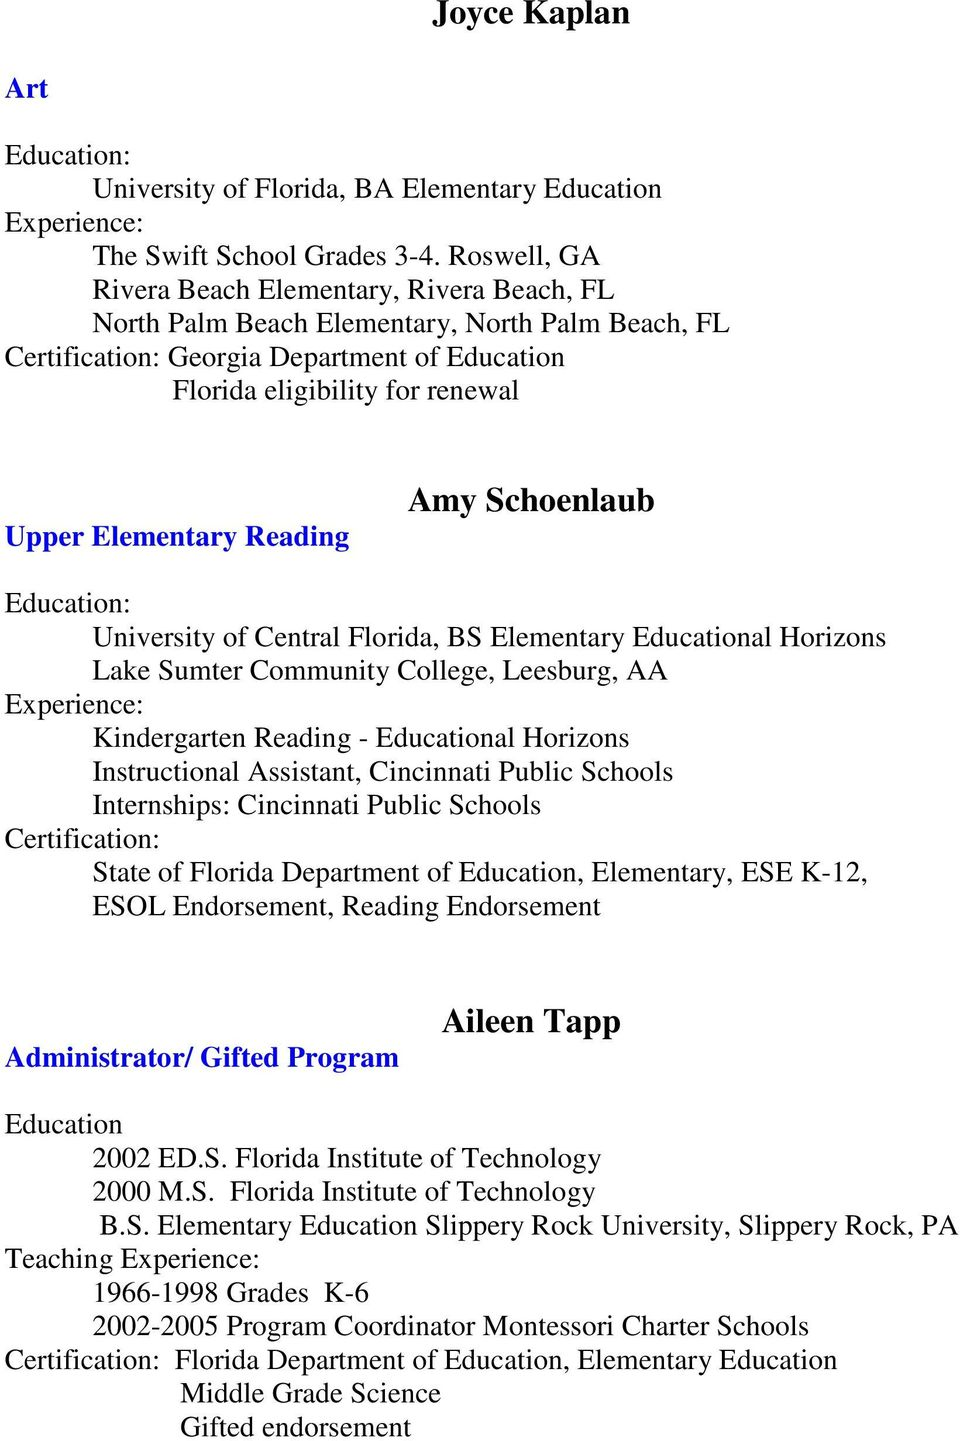 Schoenlaub University of Central Florida, BS Elementary Educational Horizons Lake Sumter Community College, Leesburg, AA Kindergarten Reading - Educational Horizons Instructional Assistant,